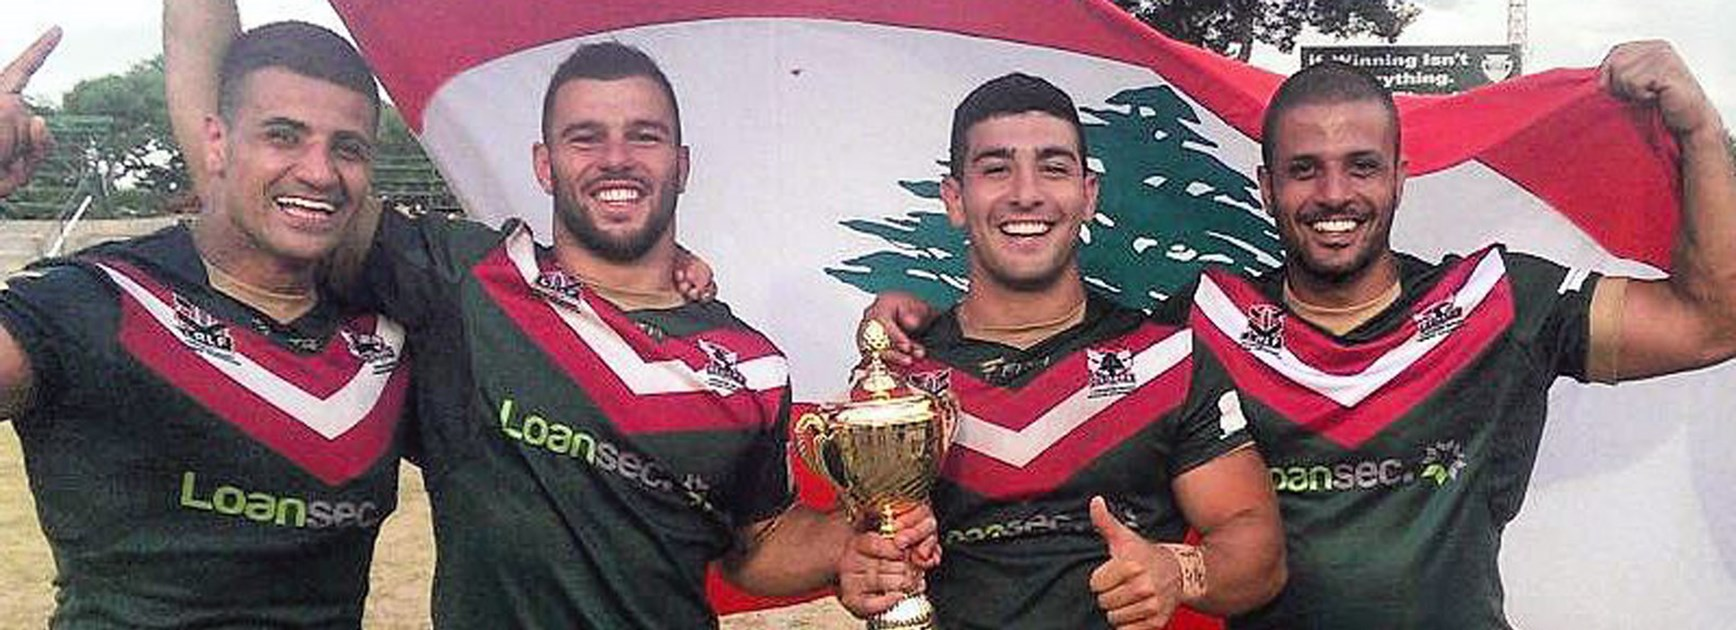 Members of the victorious Lebanon rugby league side who qualified for the 2017 Rugby League World Cup, with James Elias second from left.